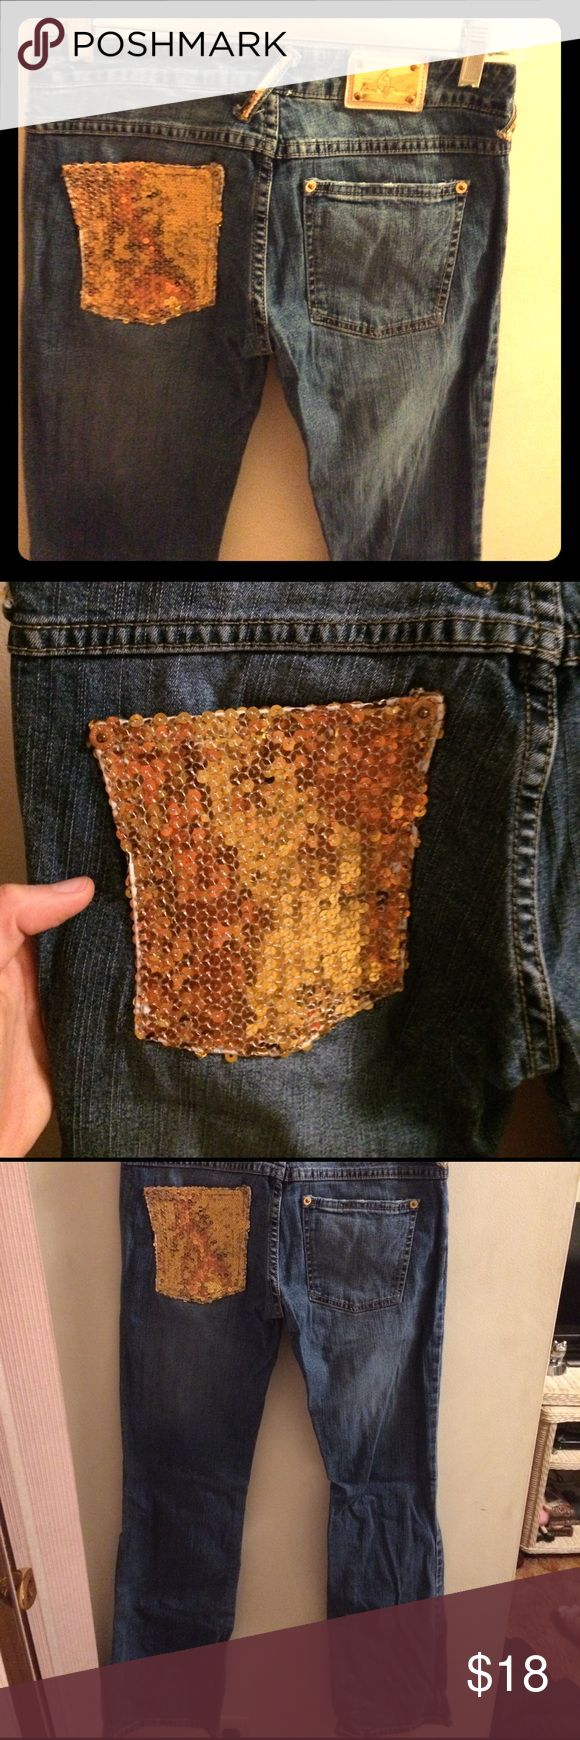 Baby phat size three sequined gold jeans Baby phat size three sequin jeans in excellent condition. Some wrinkles due to storage besides that in excellent shape. Distressed lines seen in last picture. Baby Phat Jeans Boot Cut